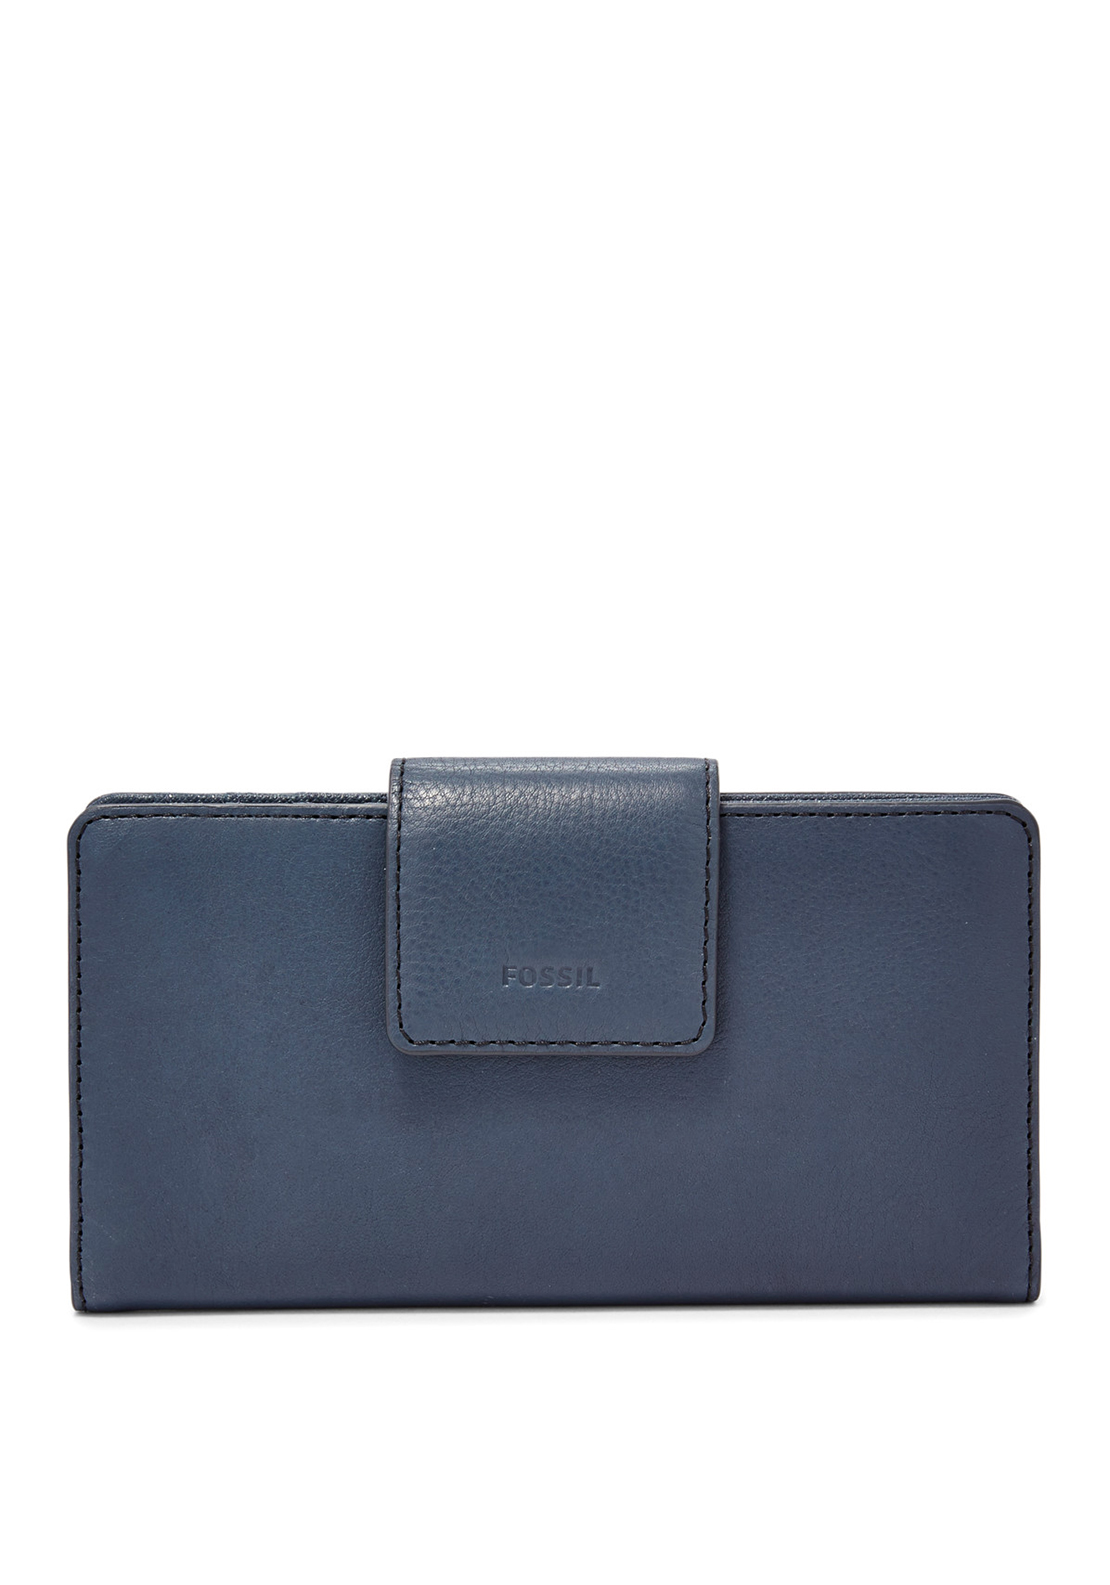 Fossil Emma Leather Tab Purse, Midnight Navy